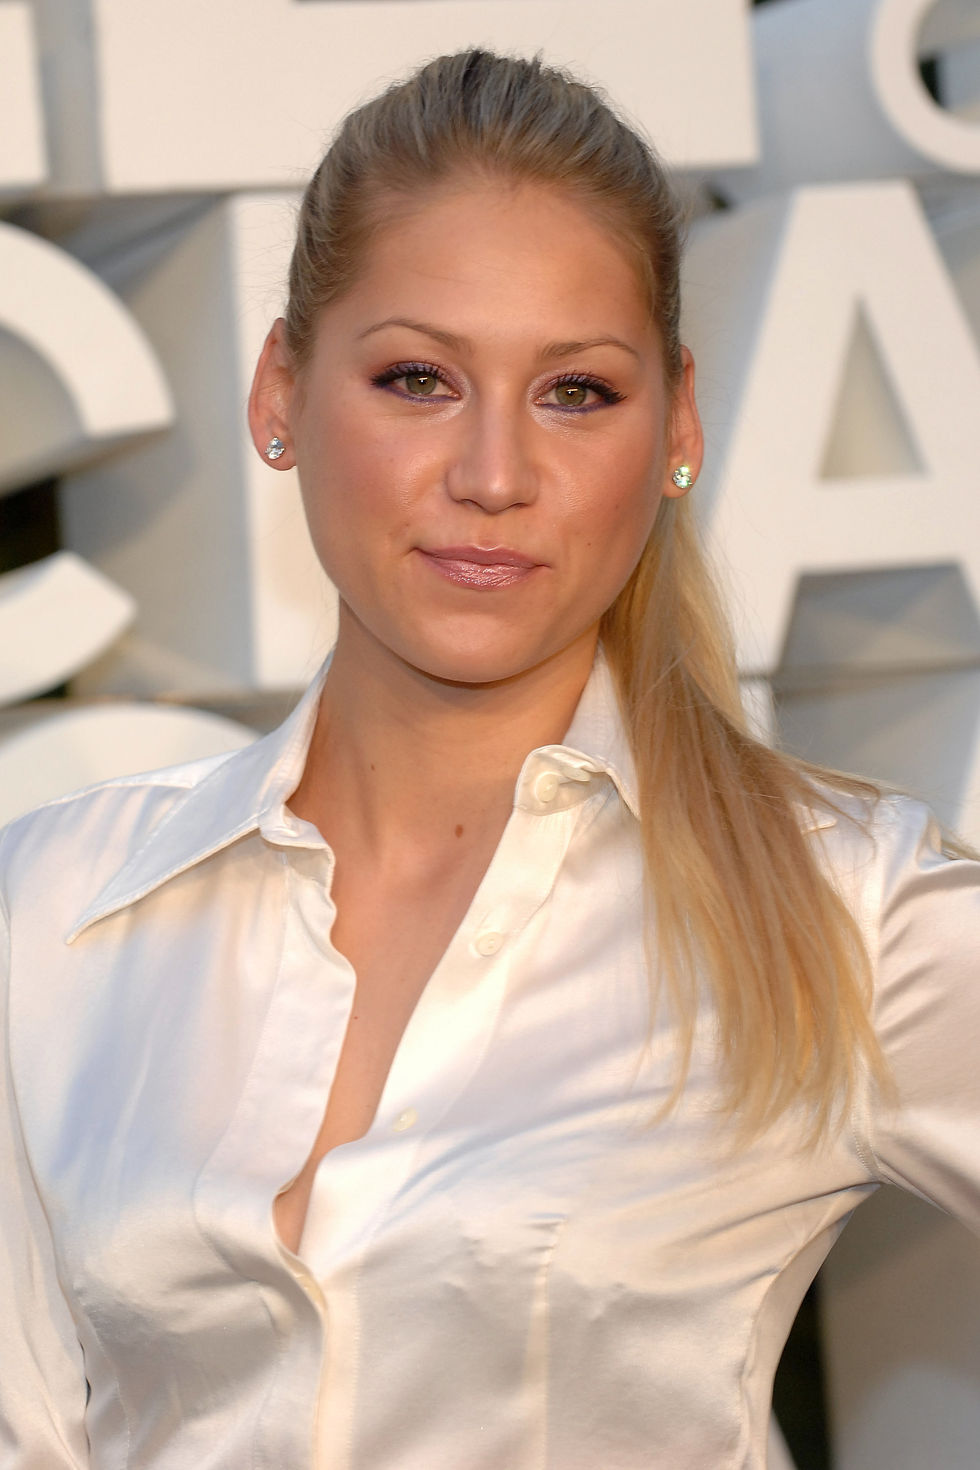 anna-kournikova-chanel-200809-cruise-show-in-miami-01